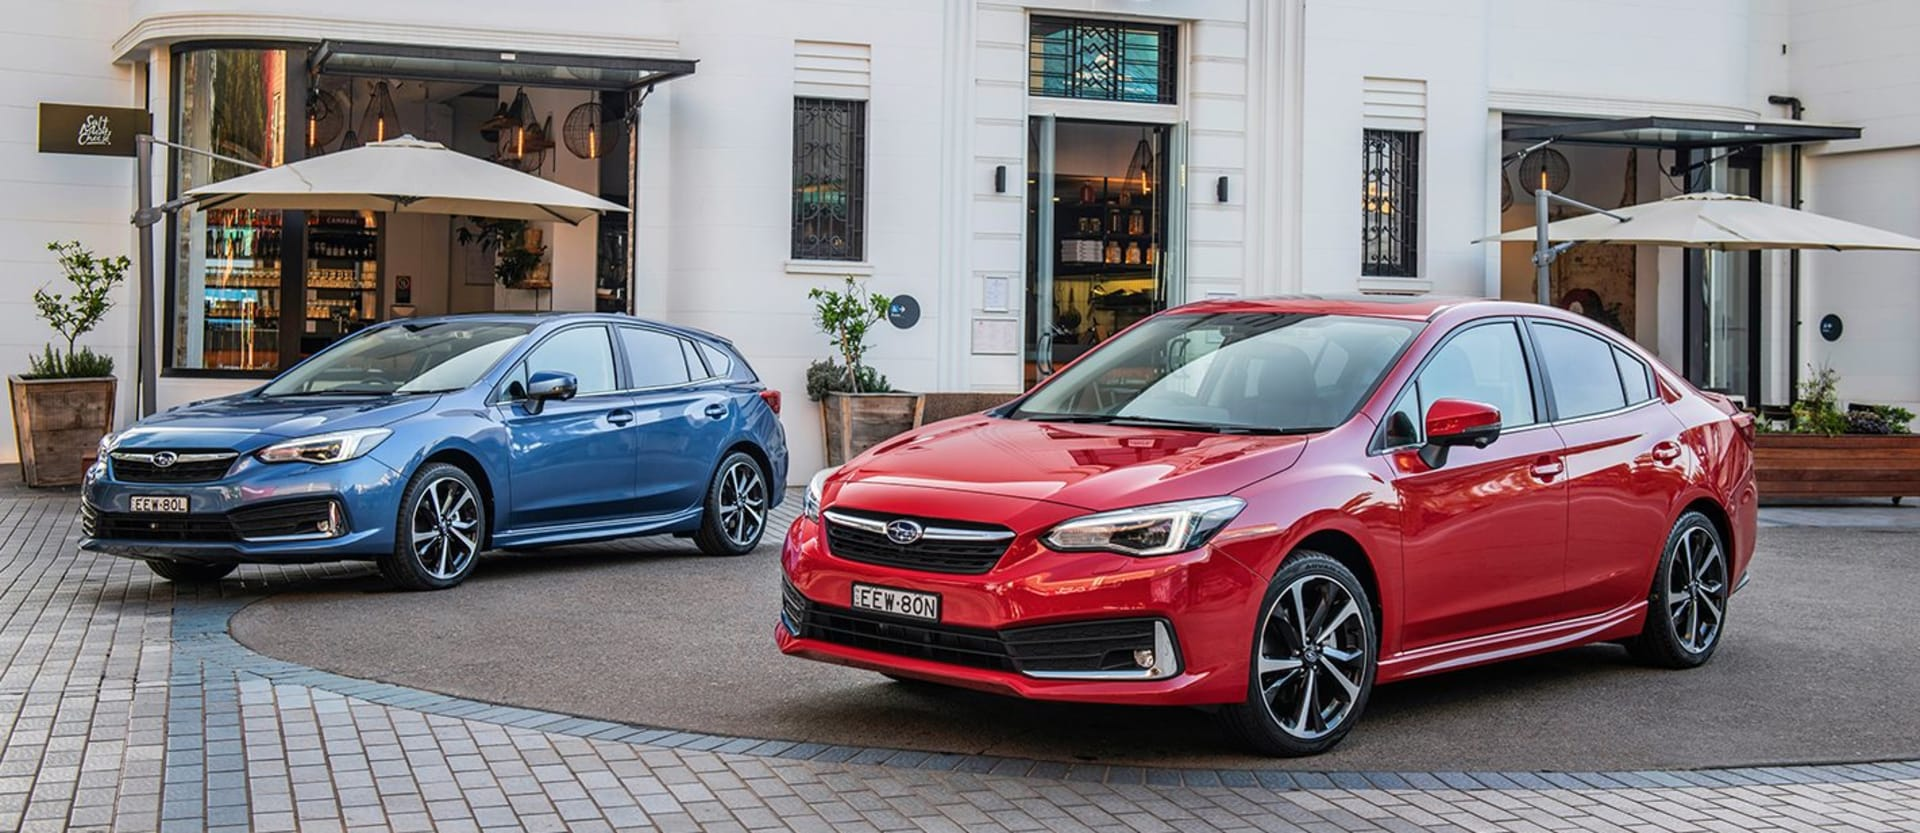 2020 Subaru Impreza hatchback and sedan